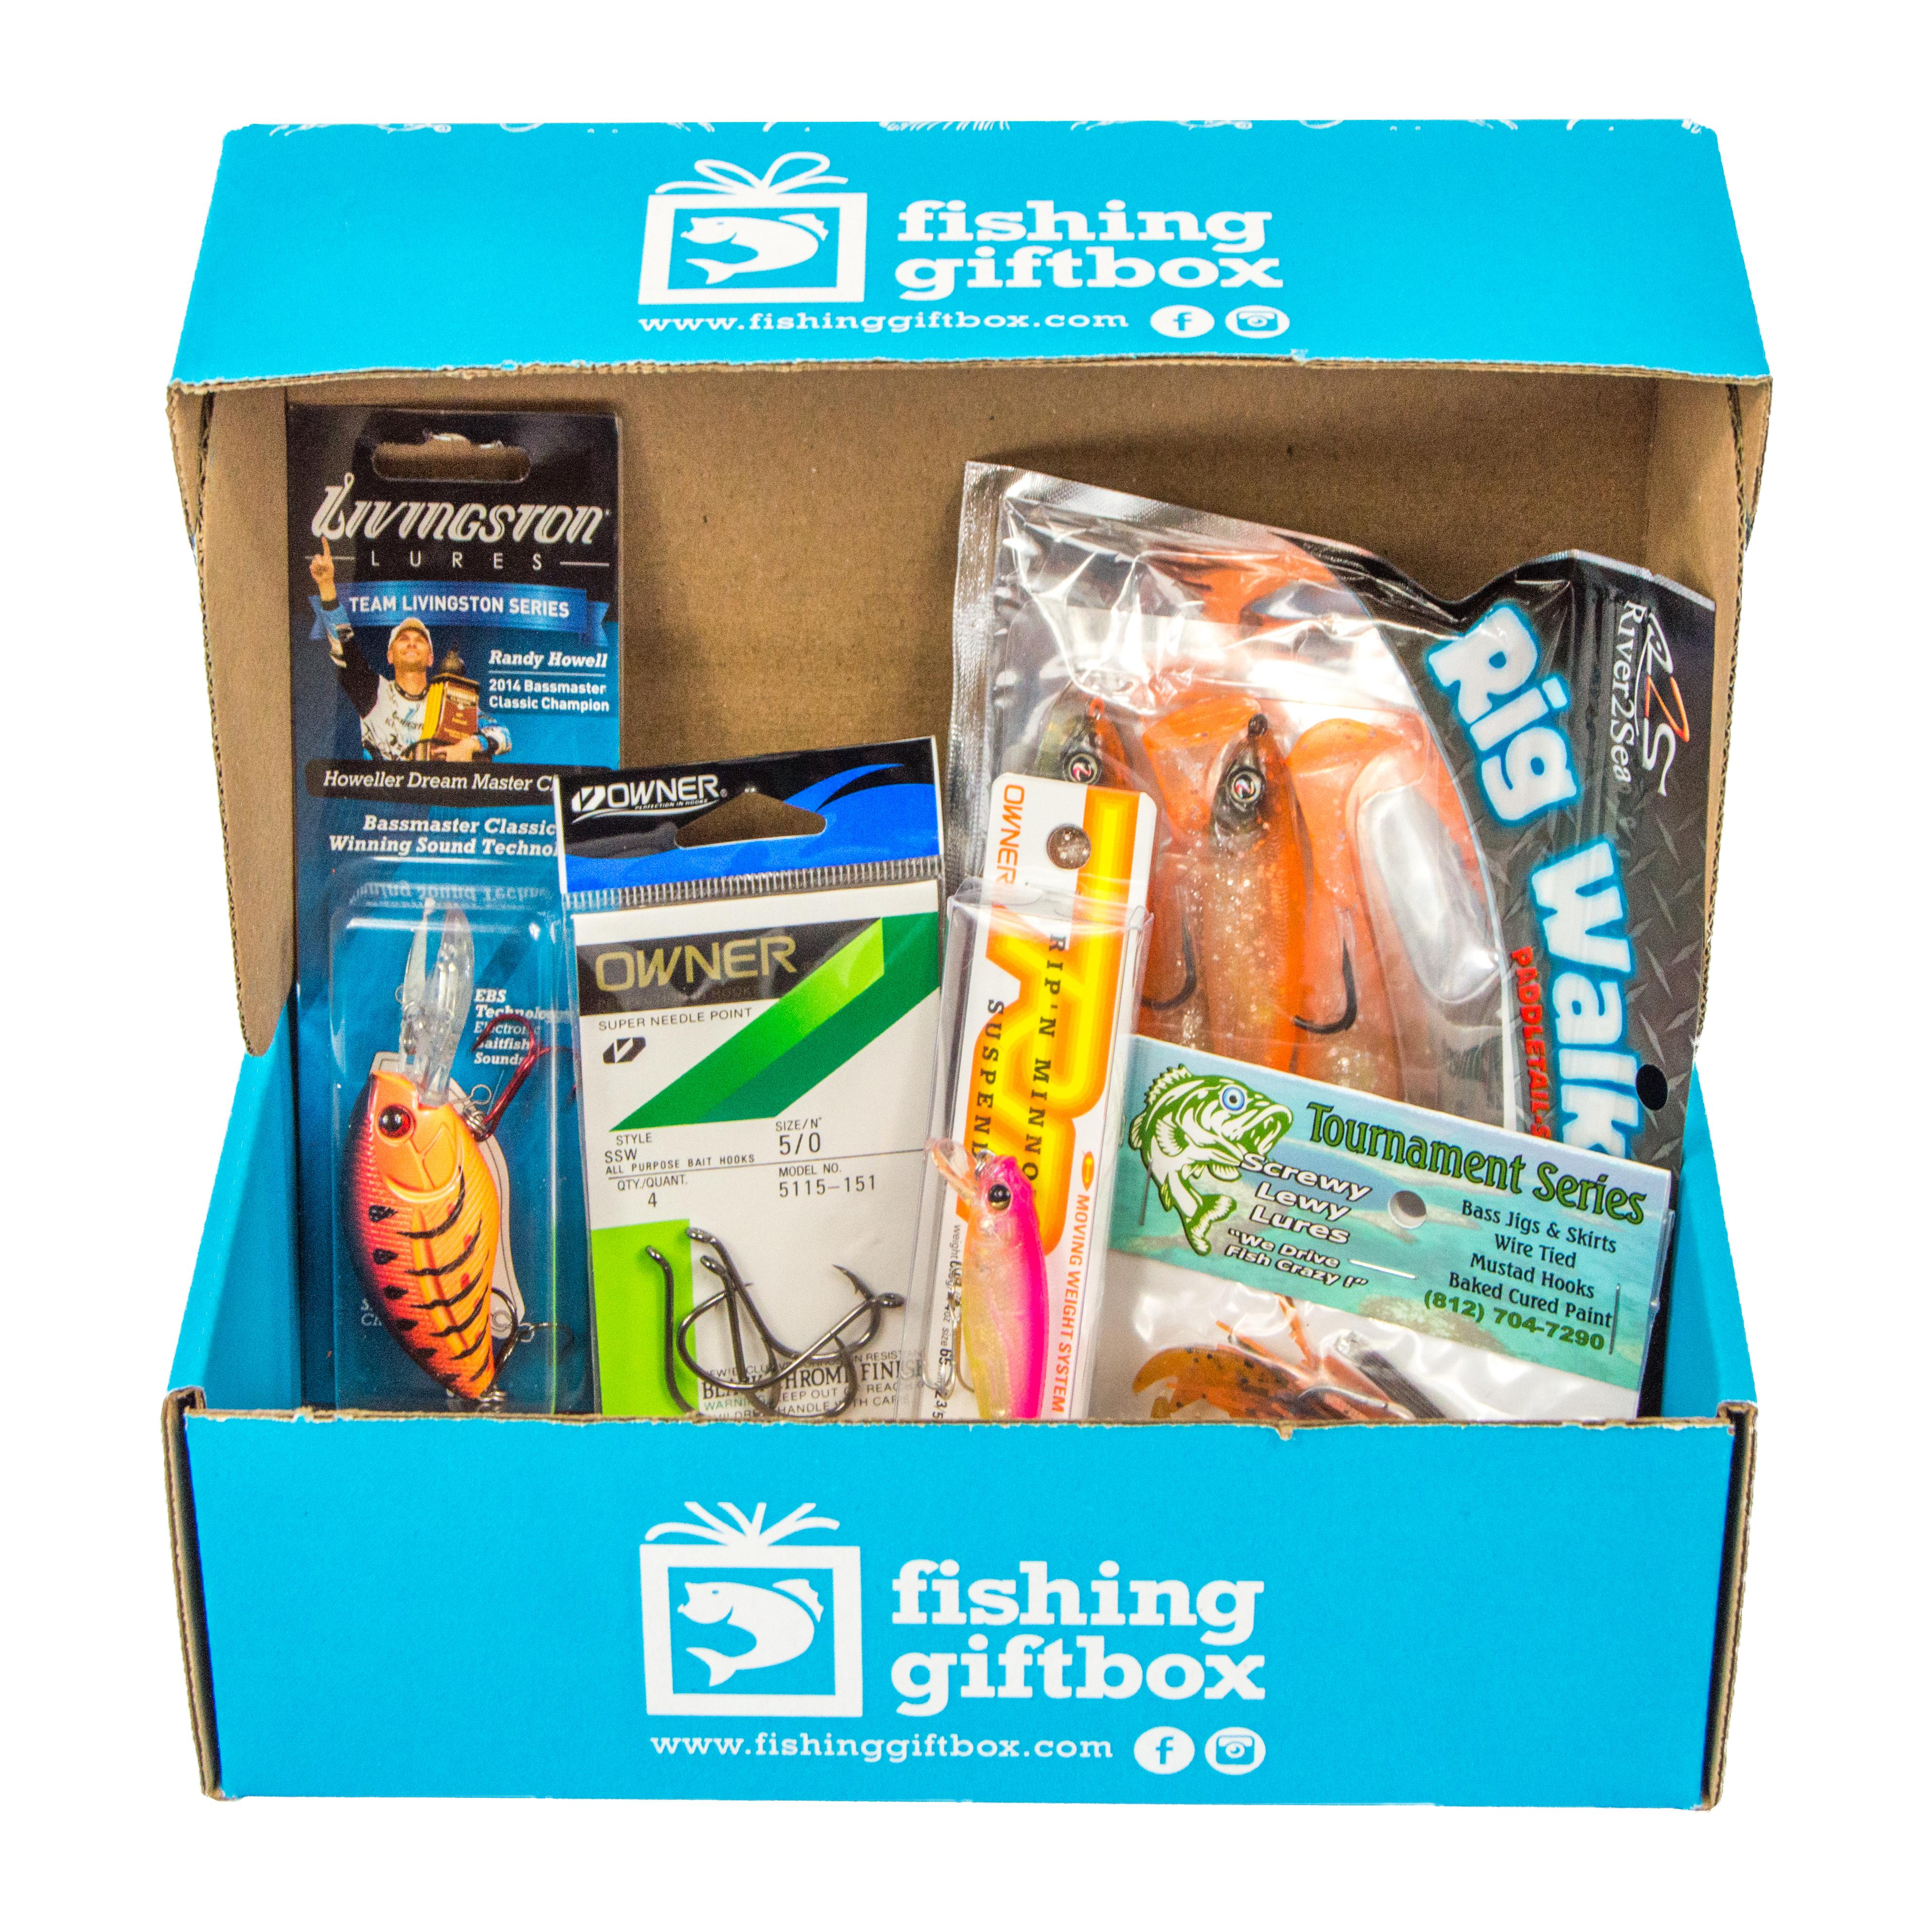 Fishing GiftBox is a monthly subscription box for every angler, fresh or saltwater! The best lures, tackle and fishing gear conveniently delivered straight to your door. No more guessing what the fish are biting or if you have the right tackle. (Fishing Gift Box // http://fishinggiftbox.com/)